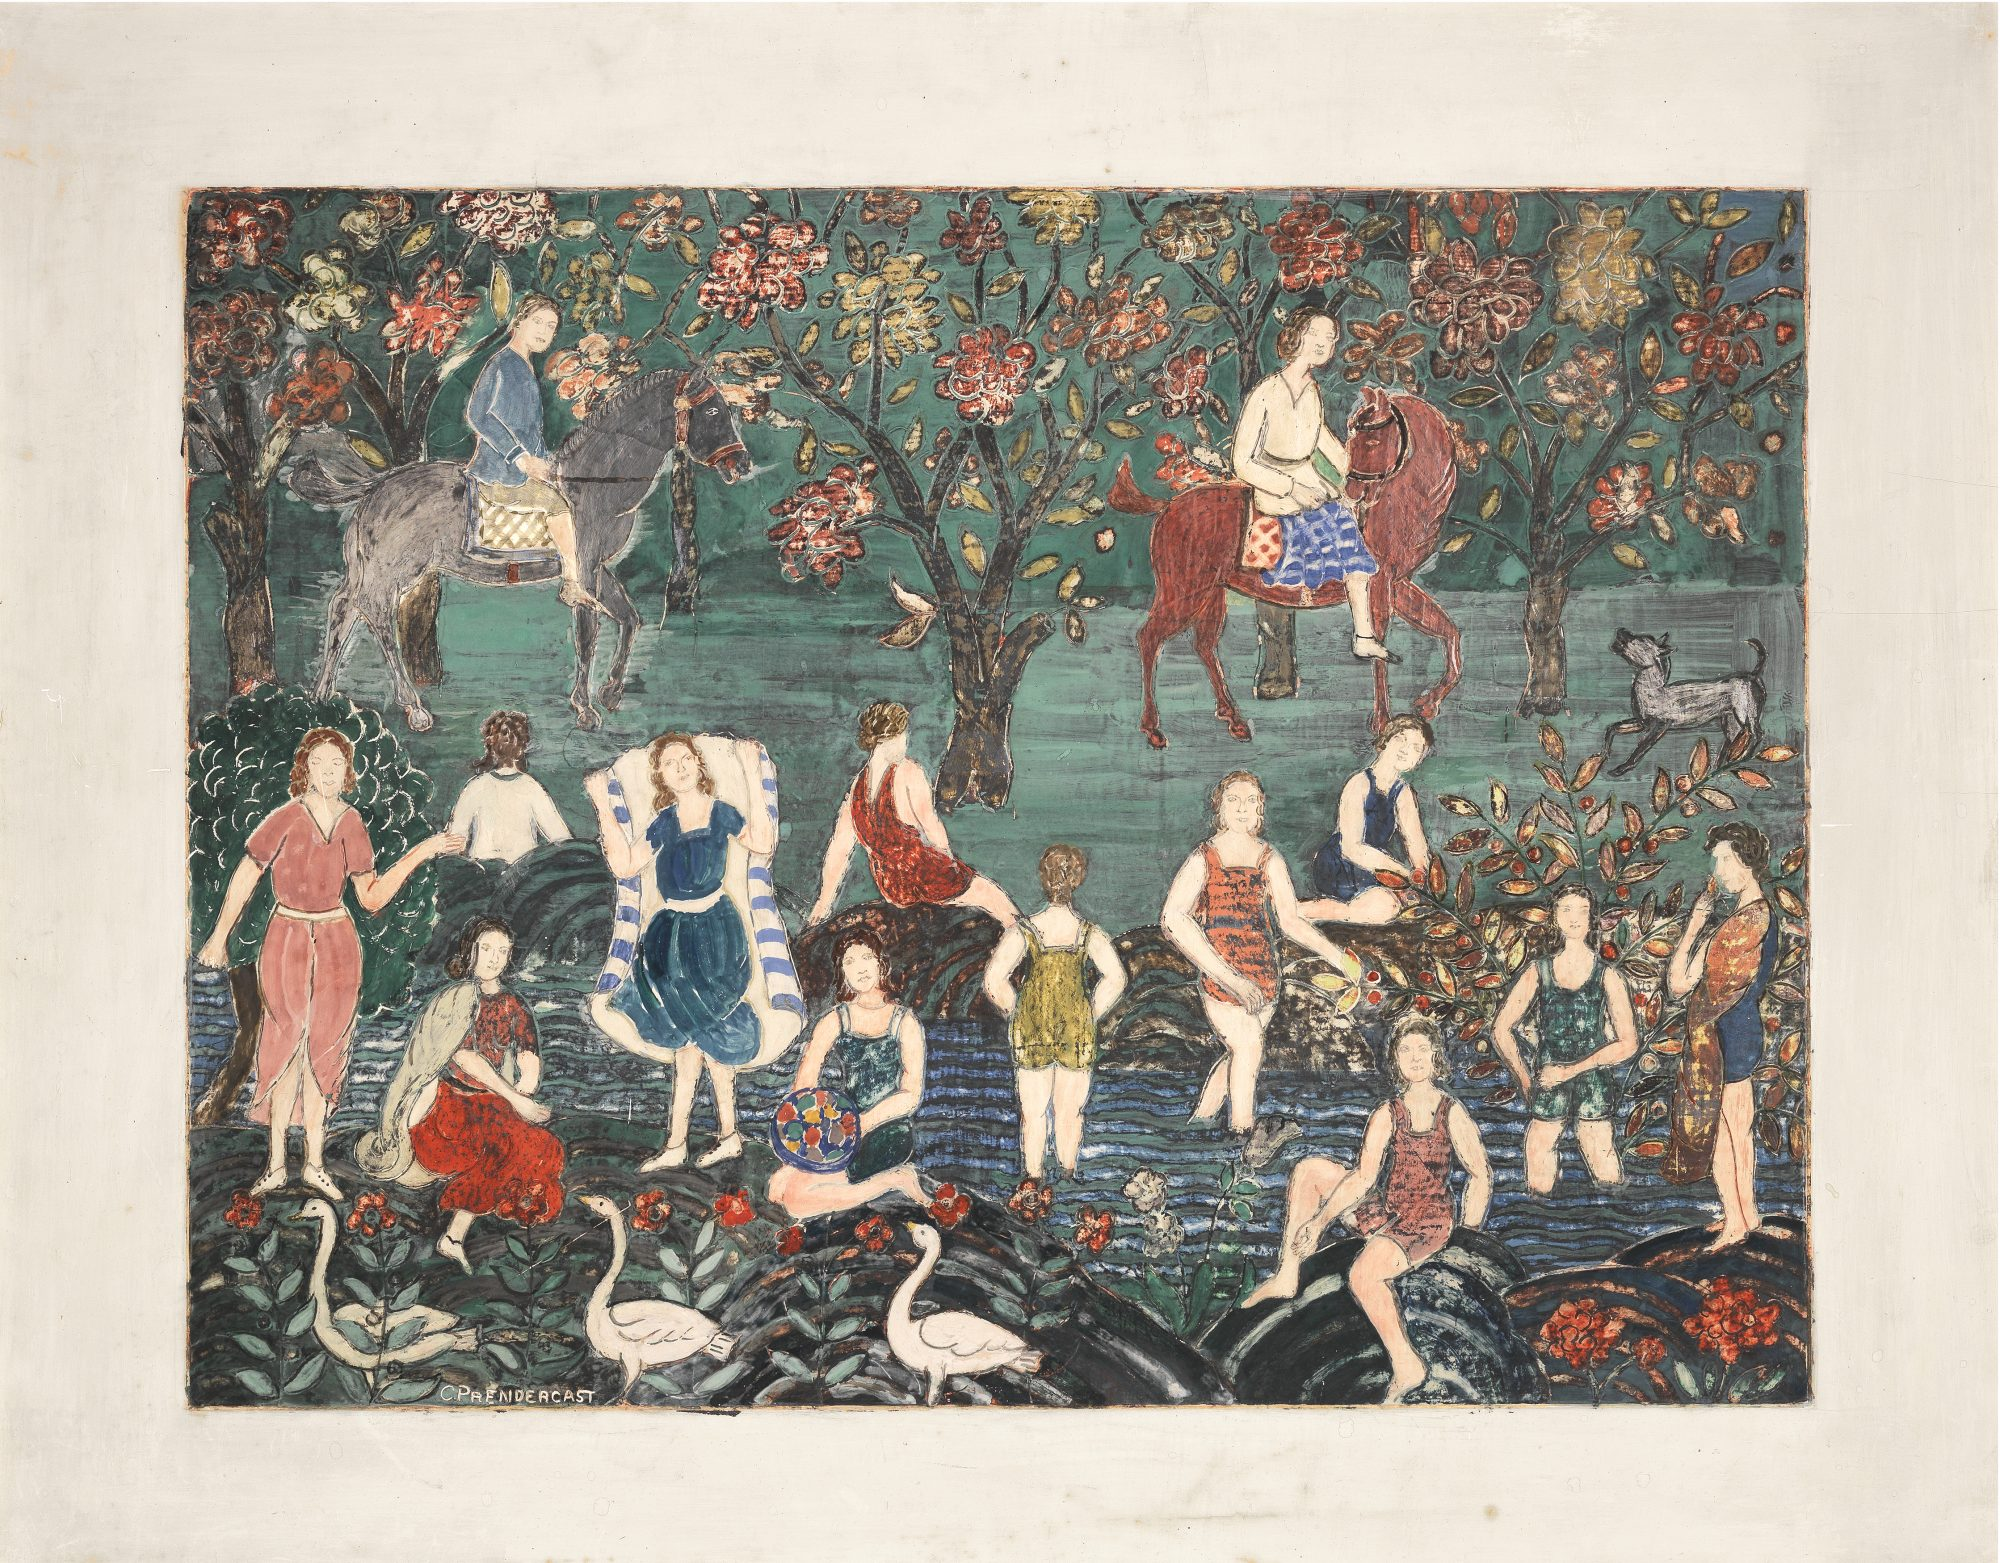 Charles Prendergast (American, 1863-1948) Bathers, c. 1940. Tempera on gessoed Masonite, 26 1/4 x 32 1/4 in. Bequest of Mrs. Charles Prendergast, 95.4.42